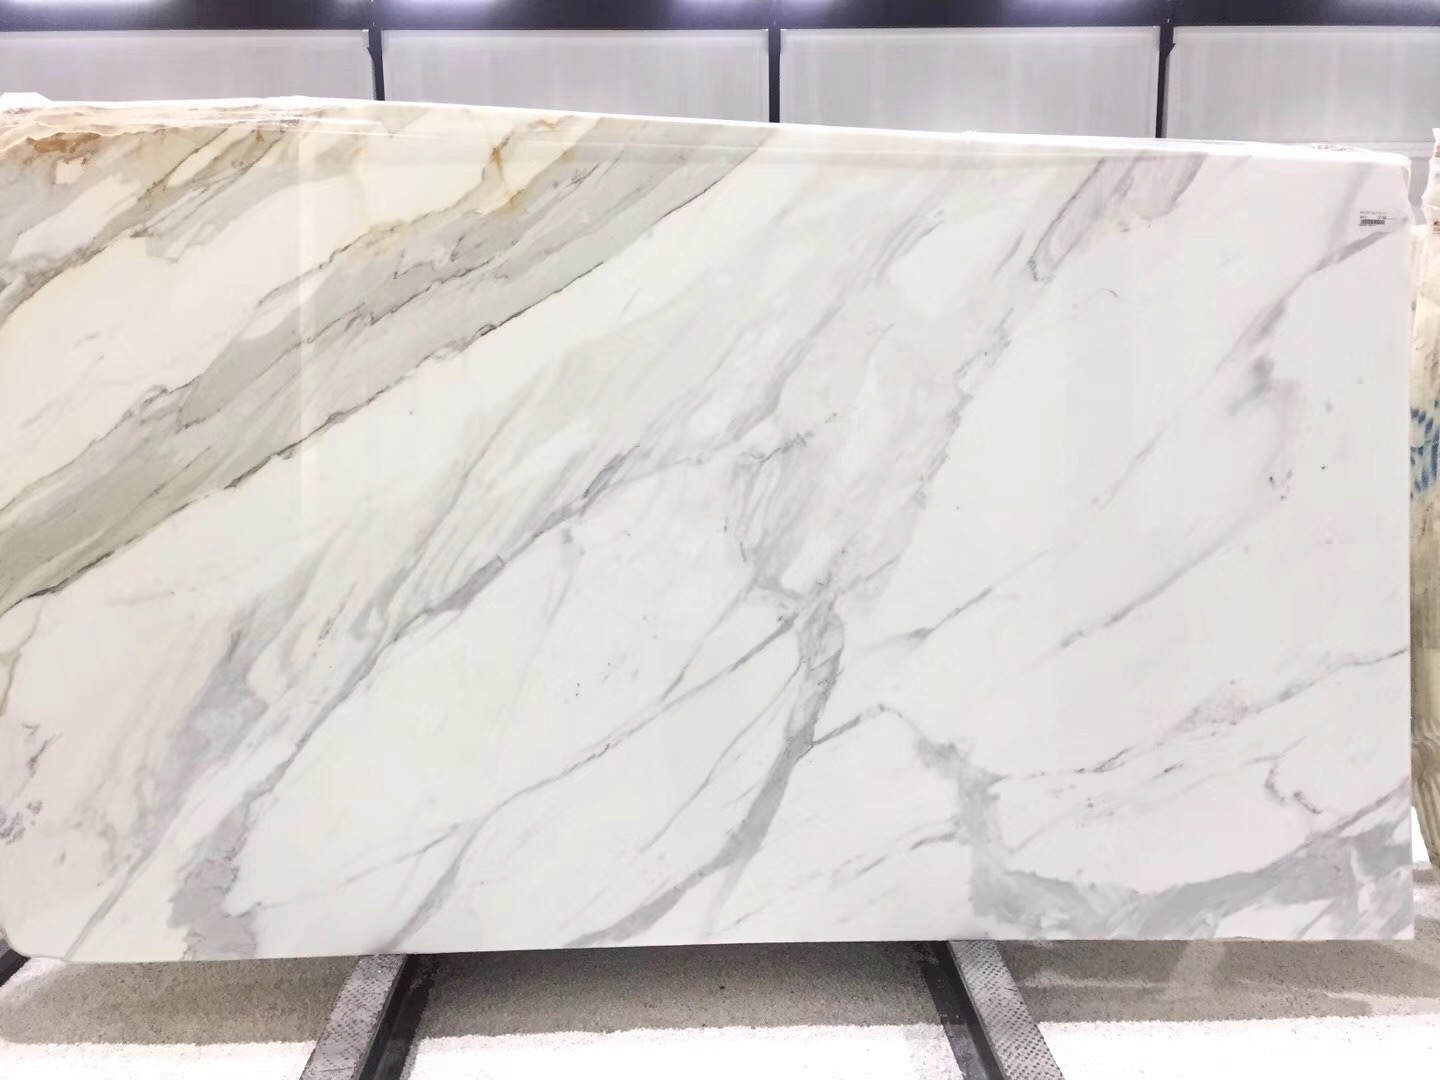 Calacatta Gold Polished Marble Slabs